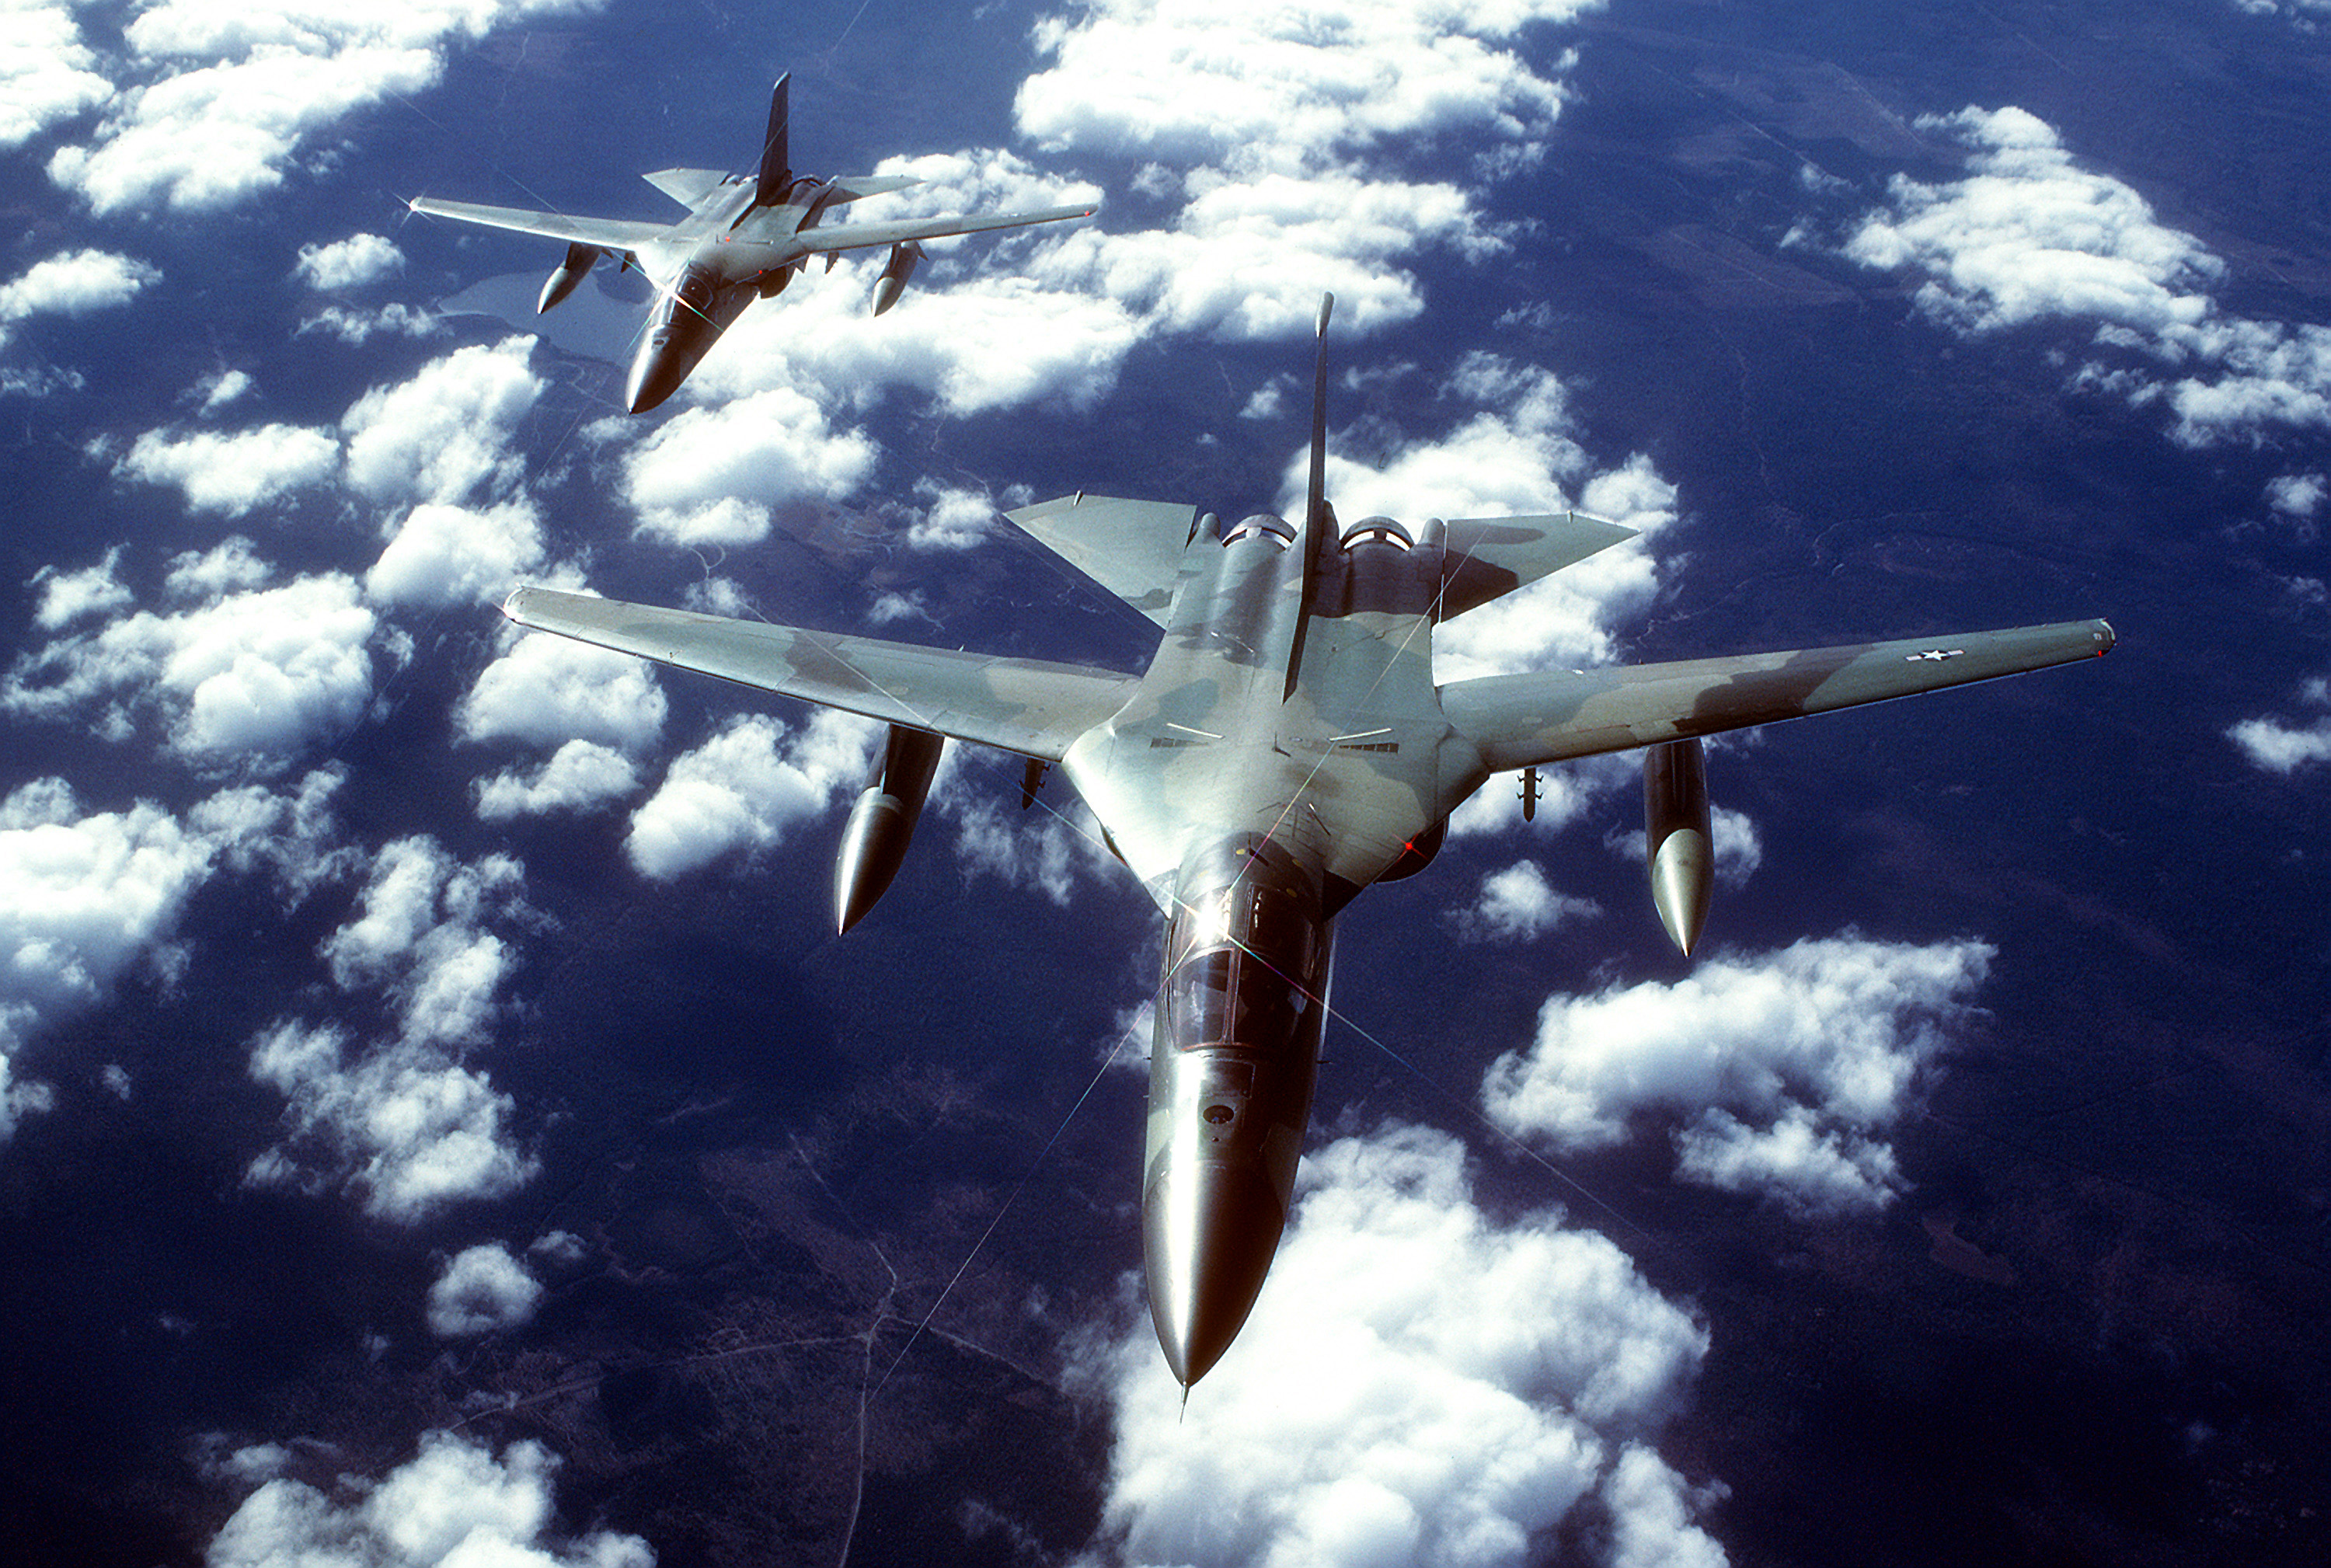 Military - General Dynamics F-111 Aardvark Wallpaper